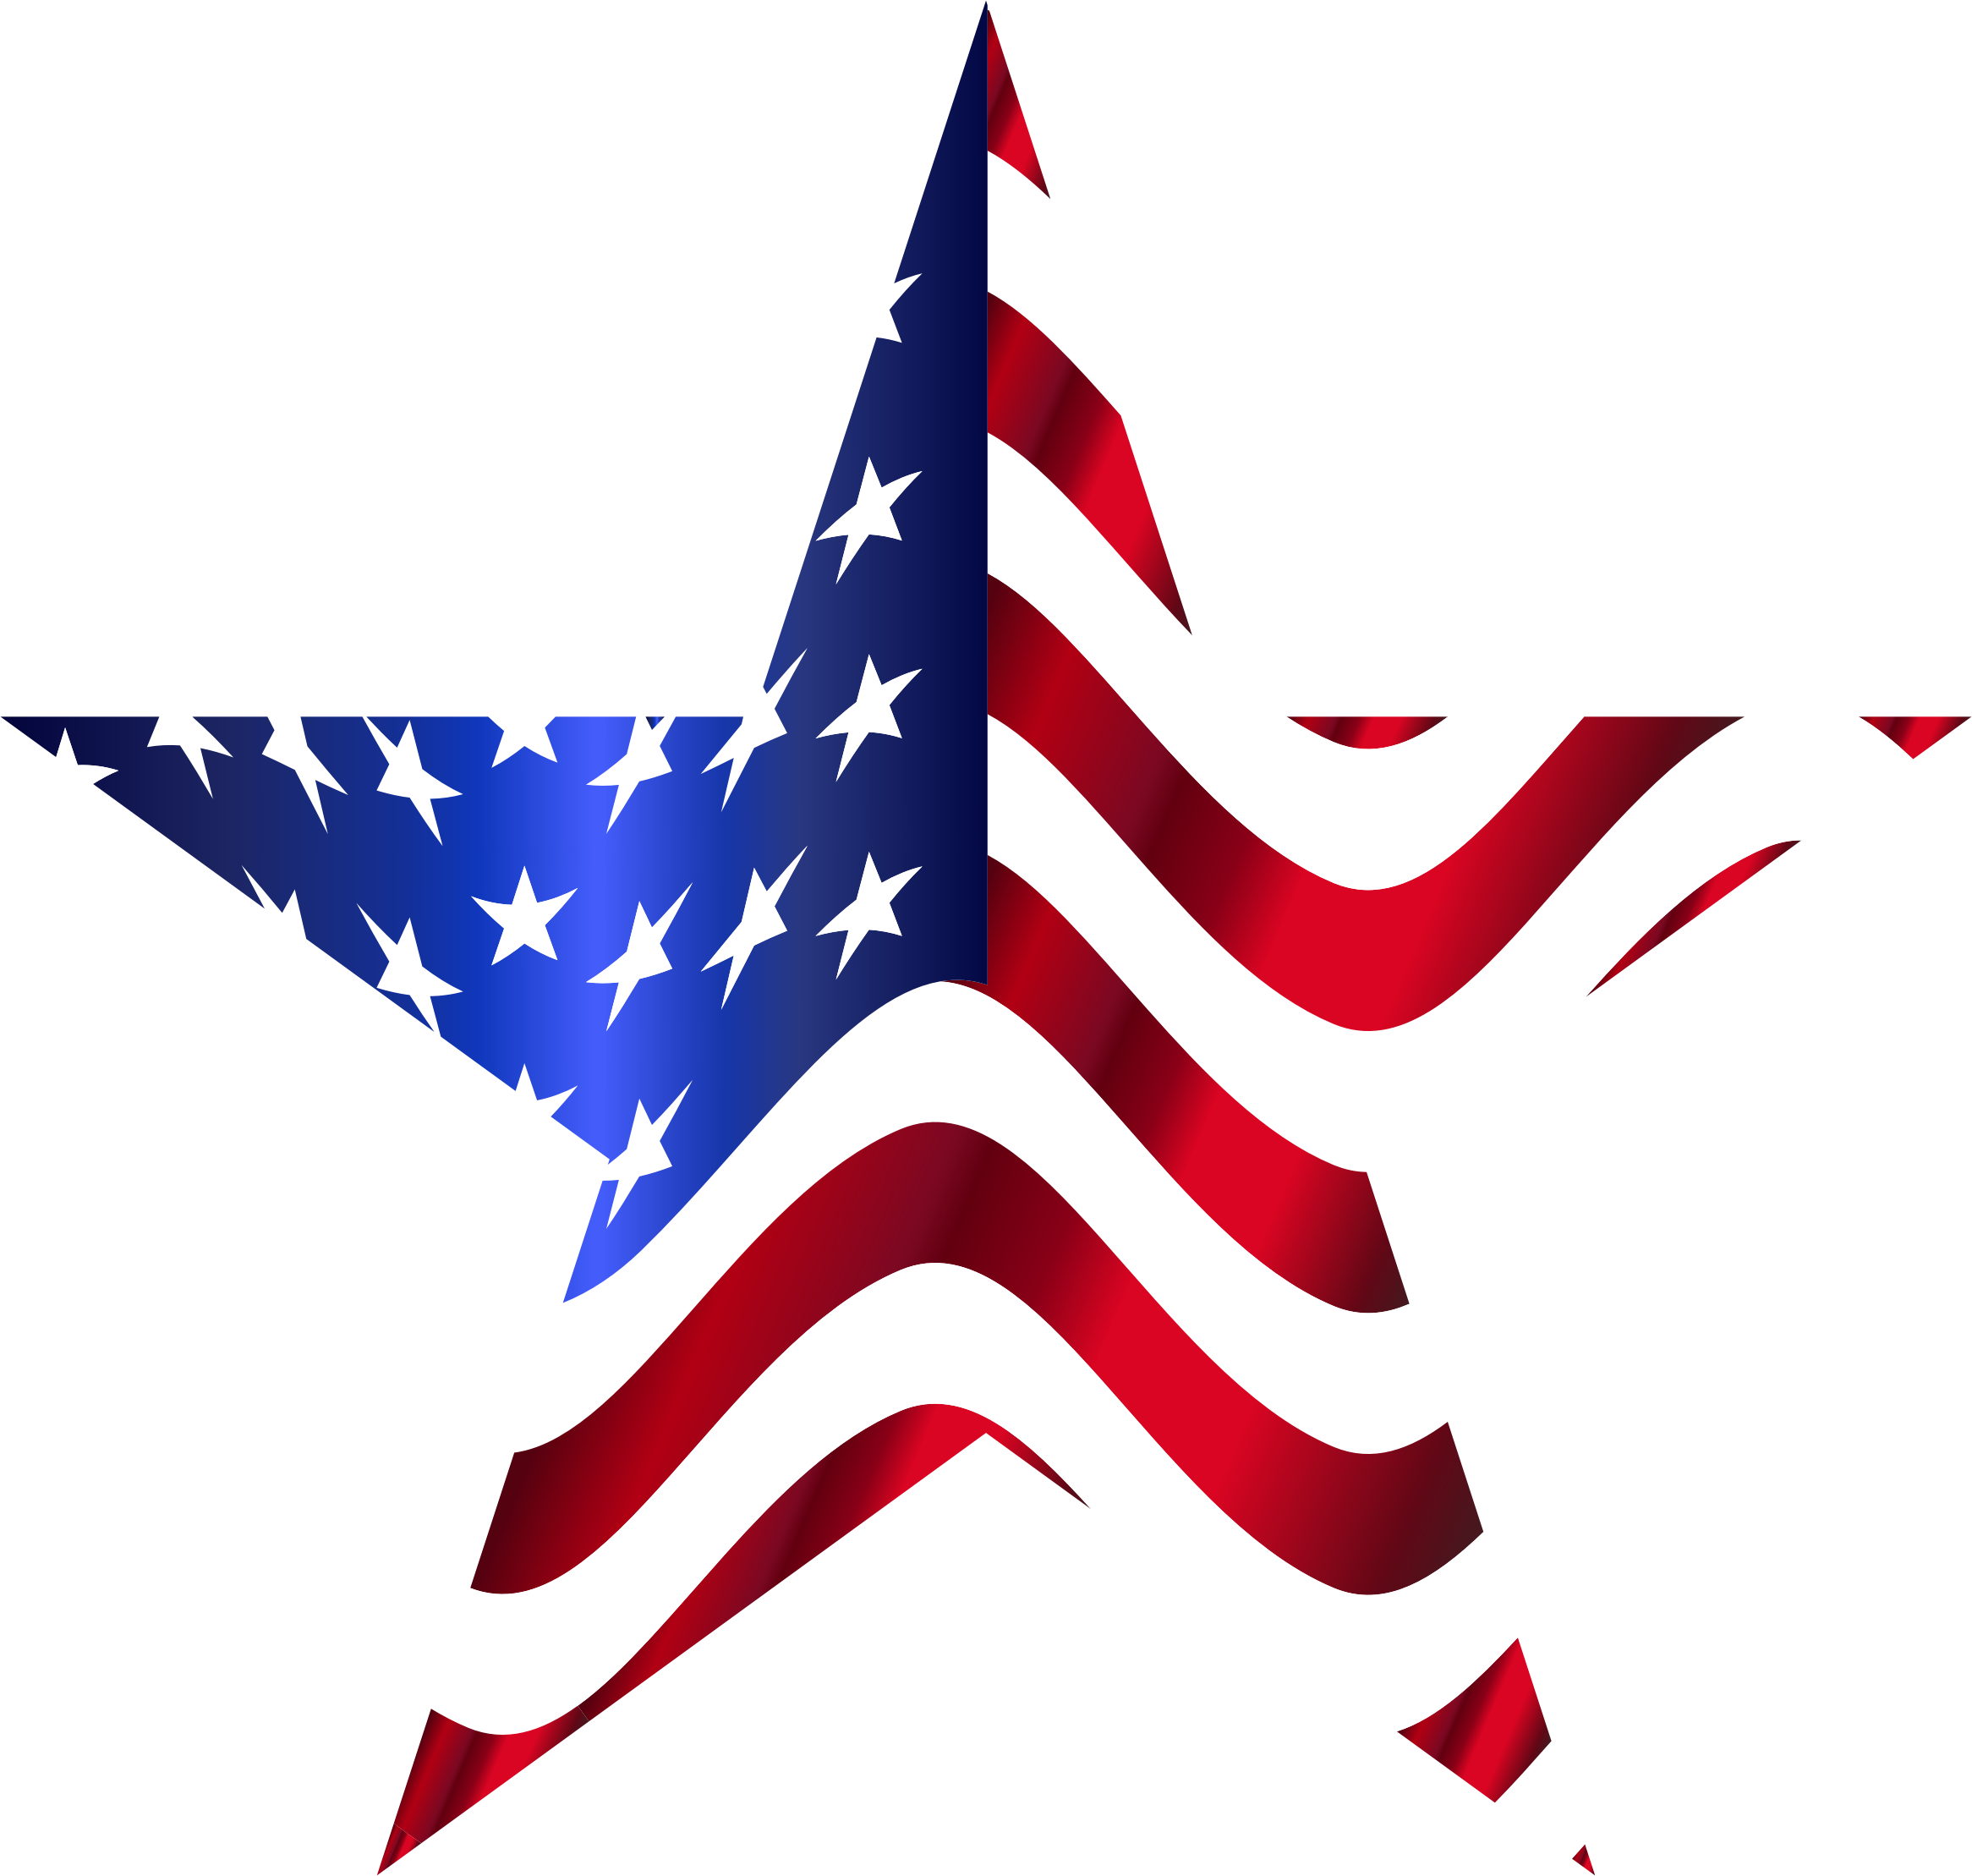 Red white and blue stars png. United states of america